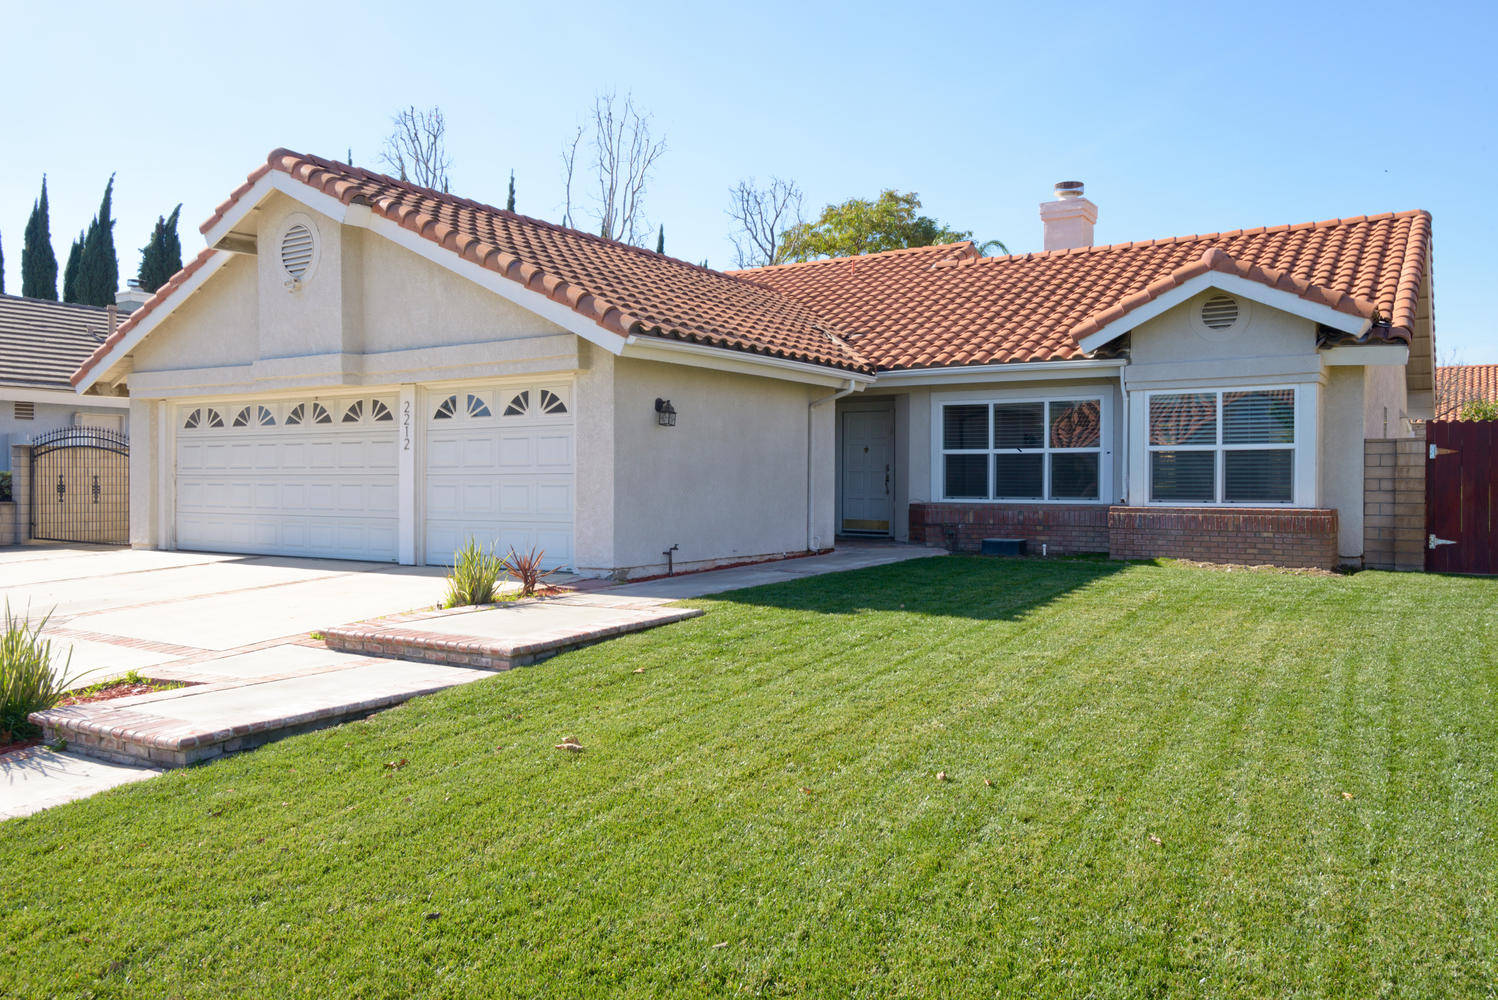 Terrific Open House 4 Bedroom Single Story Home In Corona Ca Download Free Architecture Designs Scobabritishbridgeorg